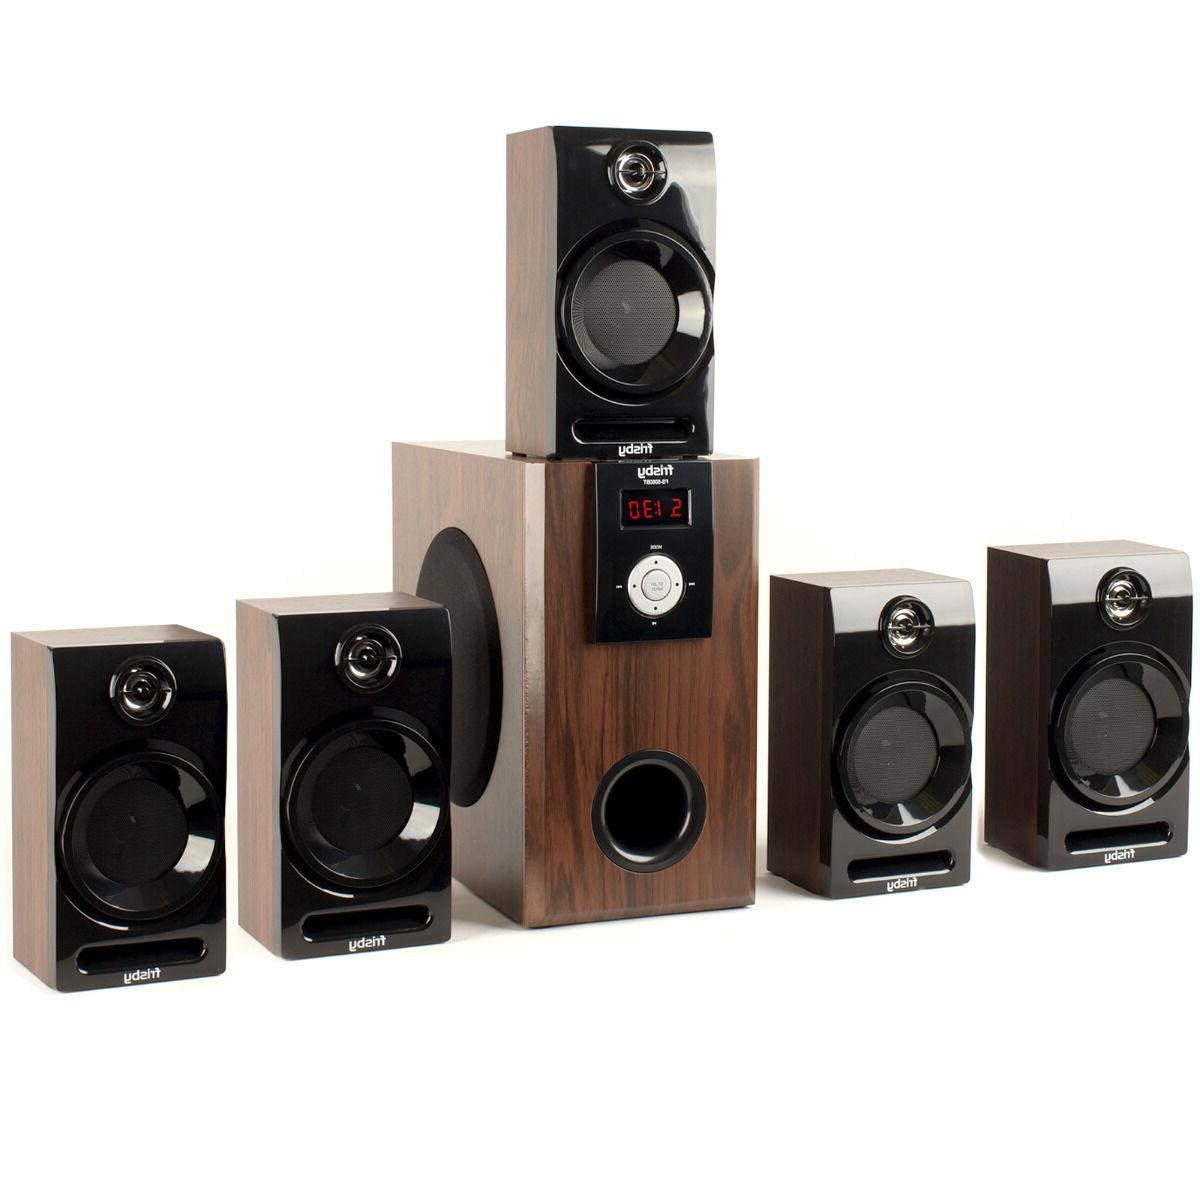 fris 5 1 surround sound